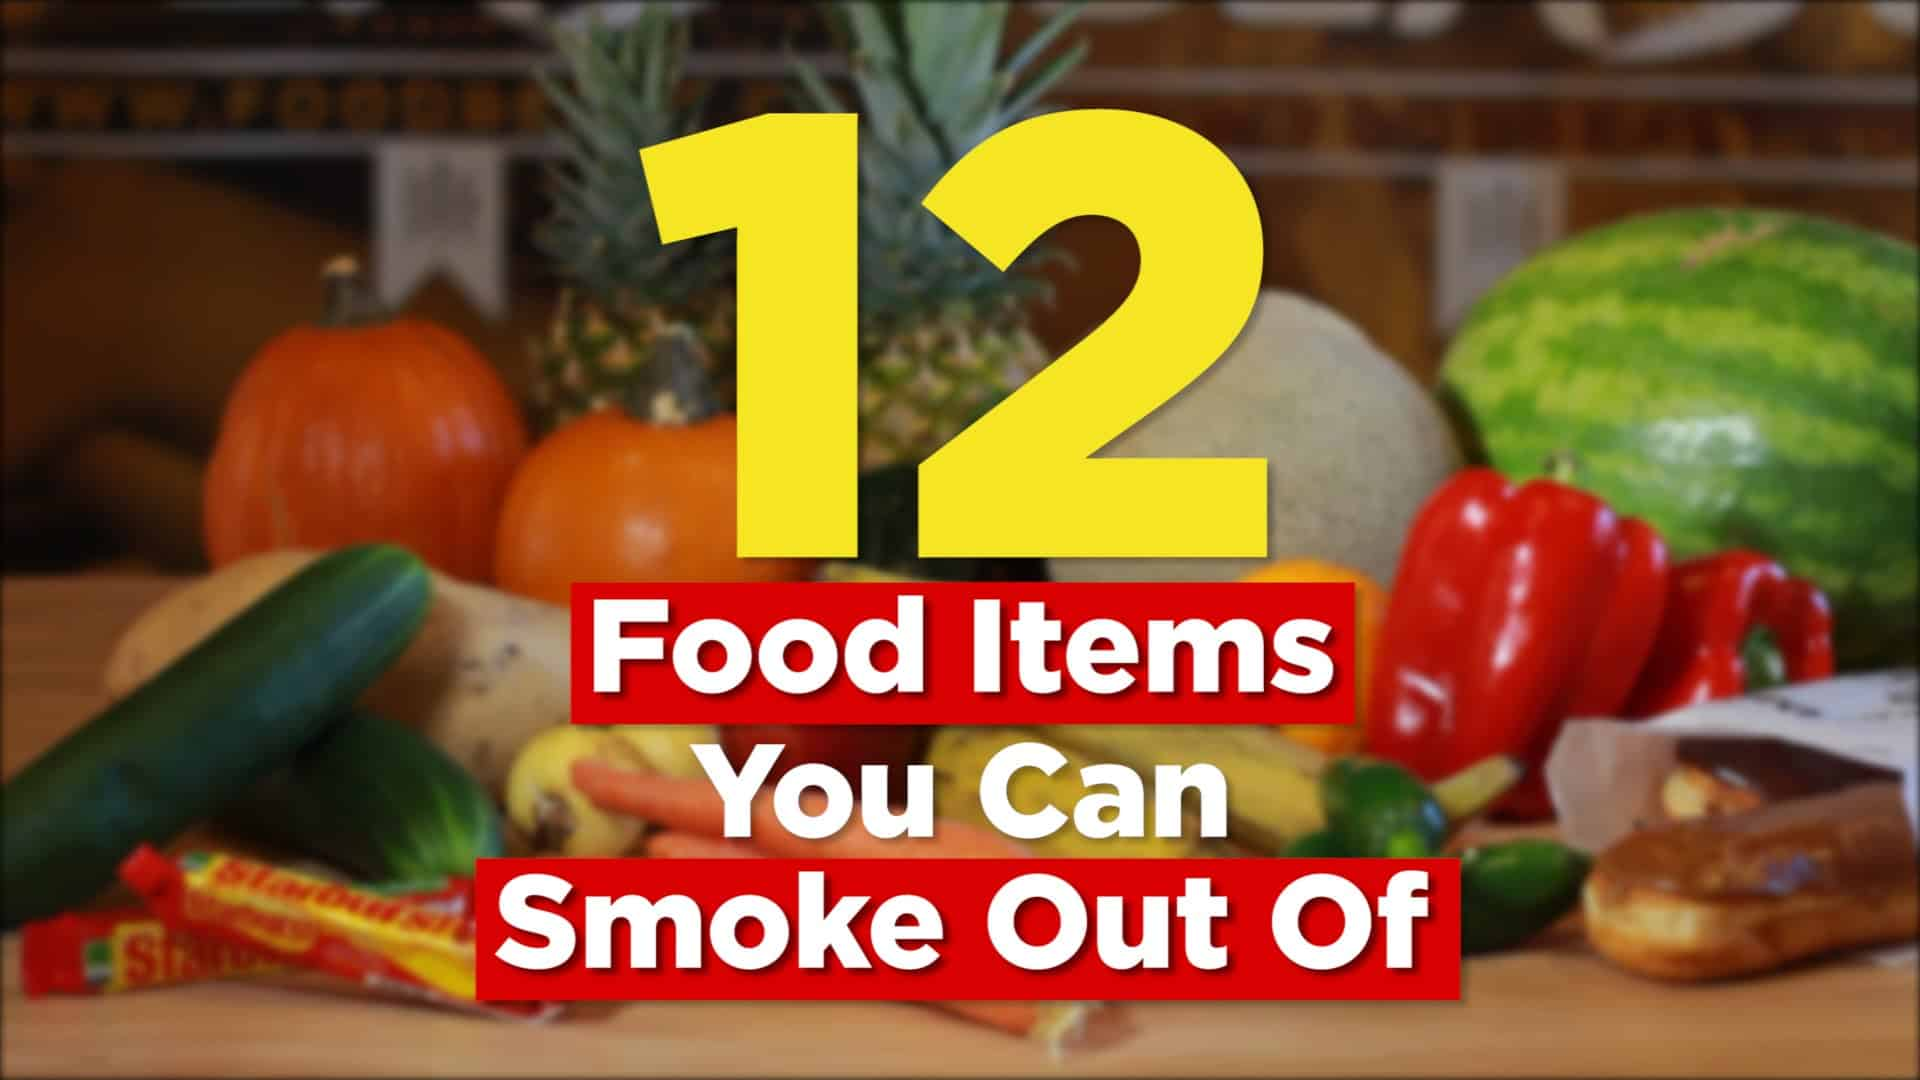 Essen, mit dem es sich kiffen lässt – Food Items You Can Smoke Out Of